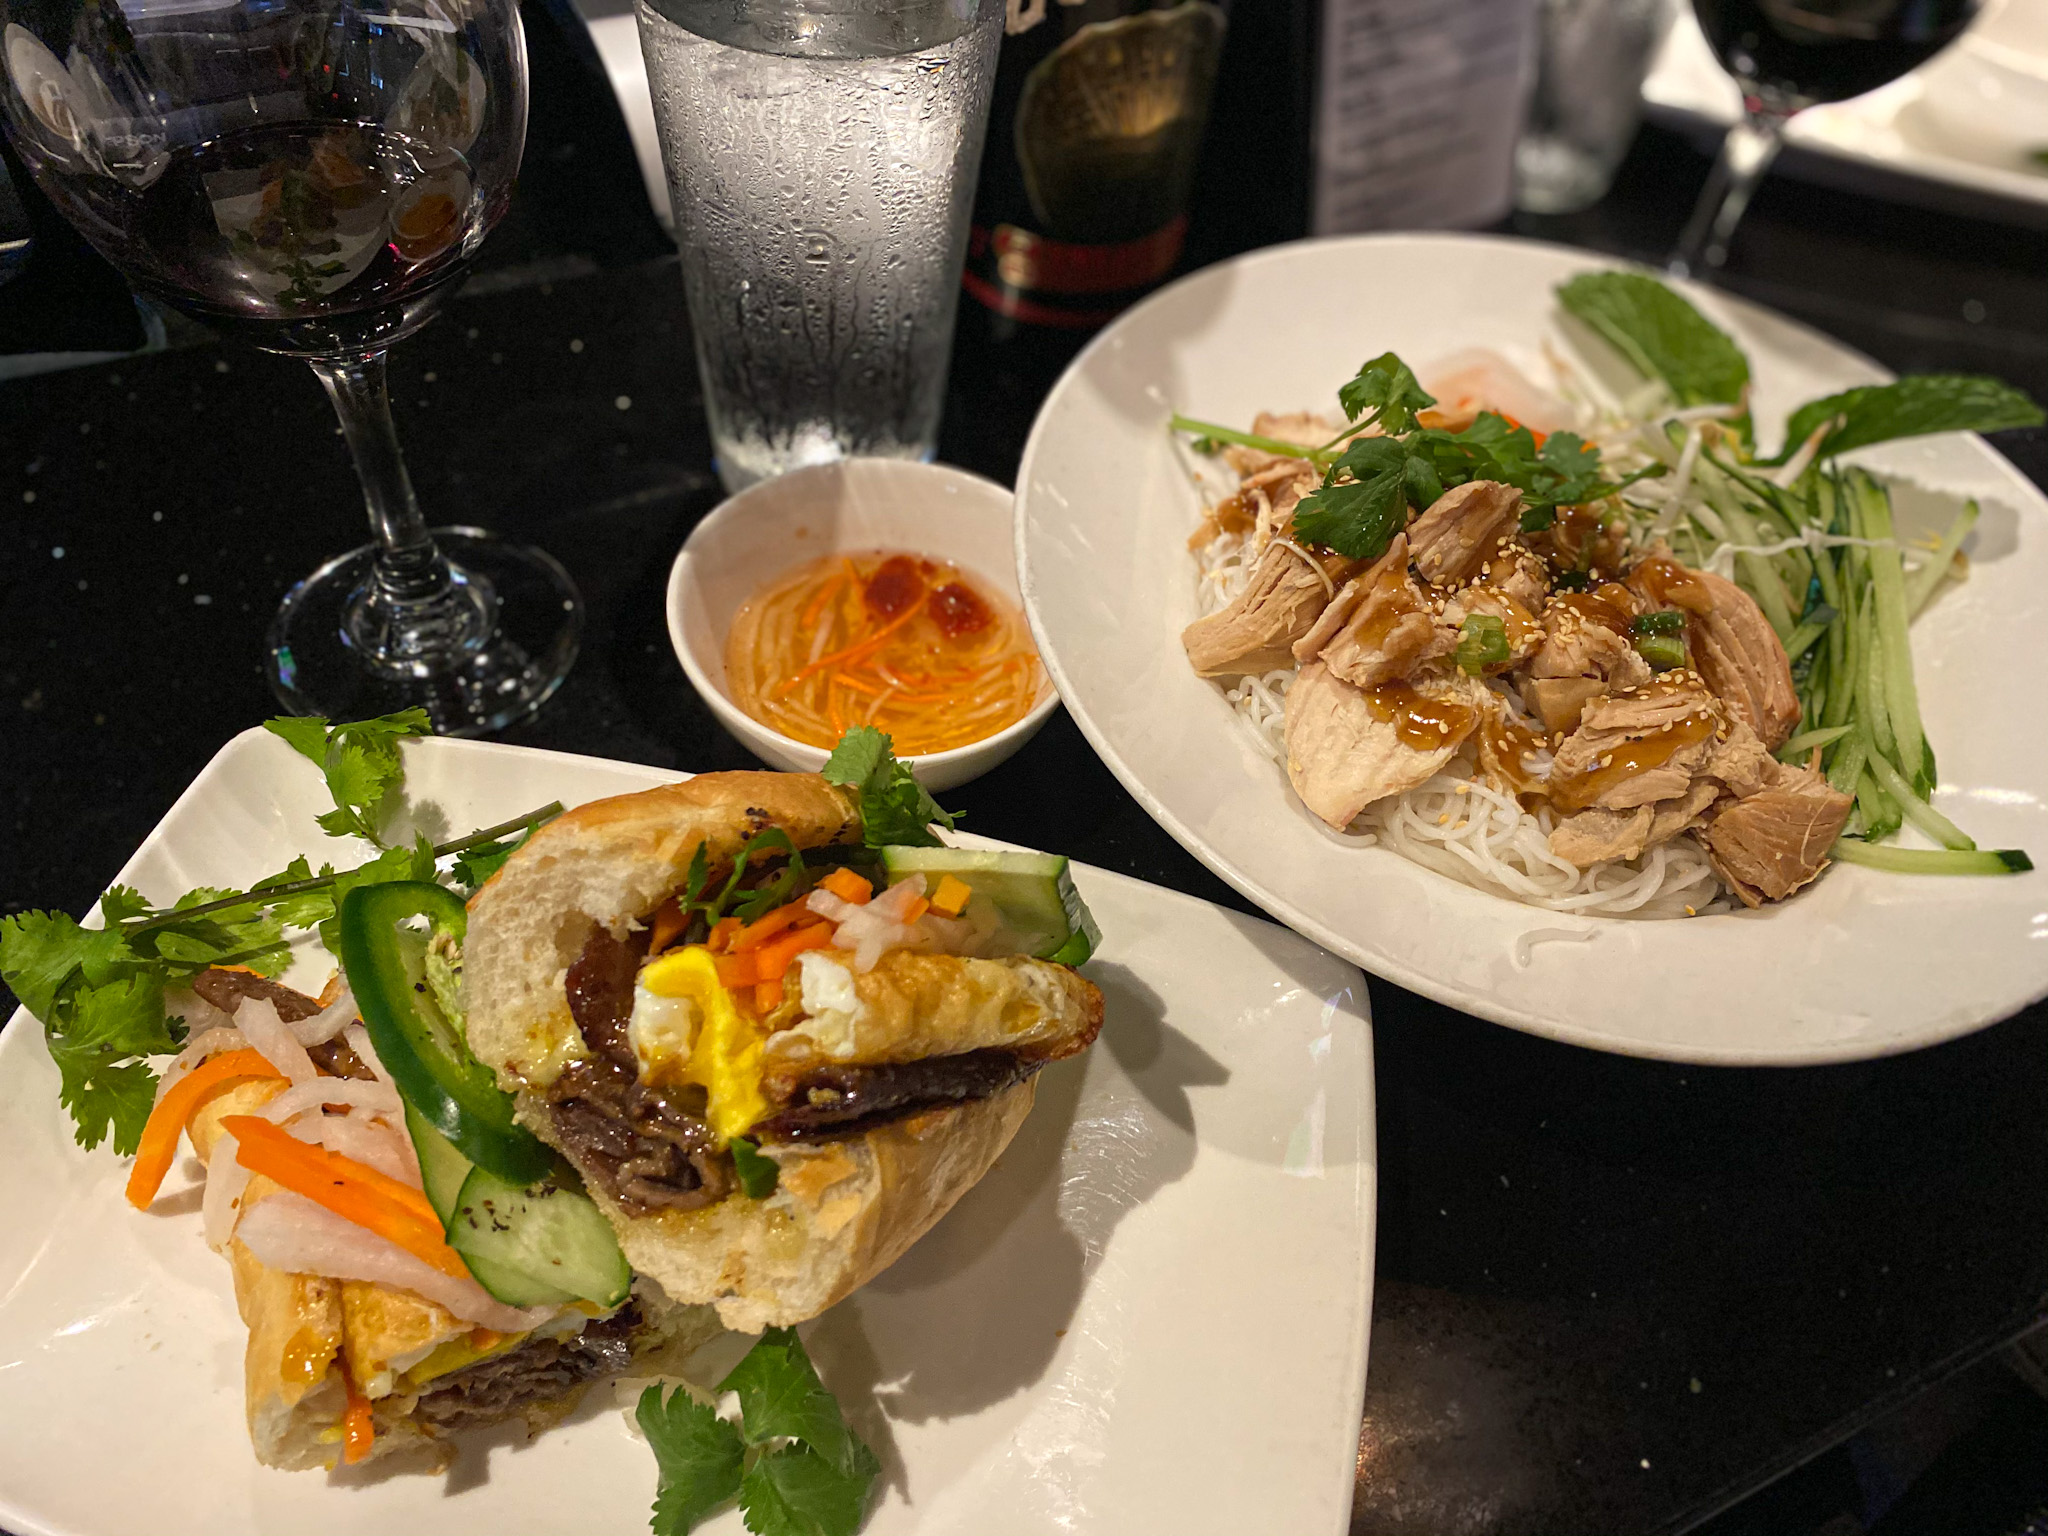 Lemongrass Beef sandwich and the Vermicelli Bowl